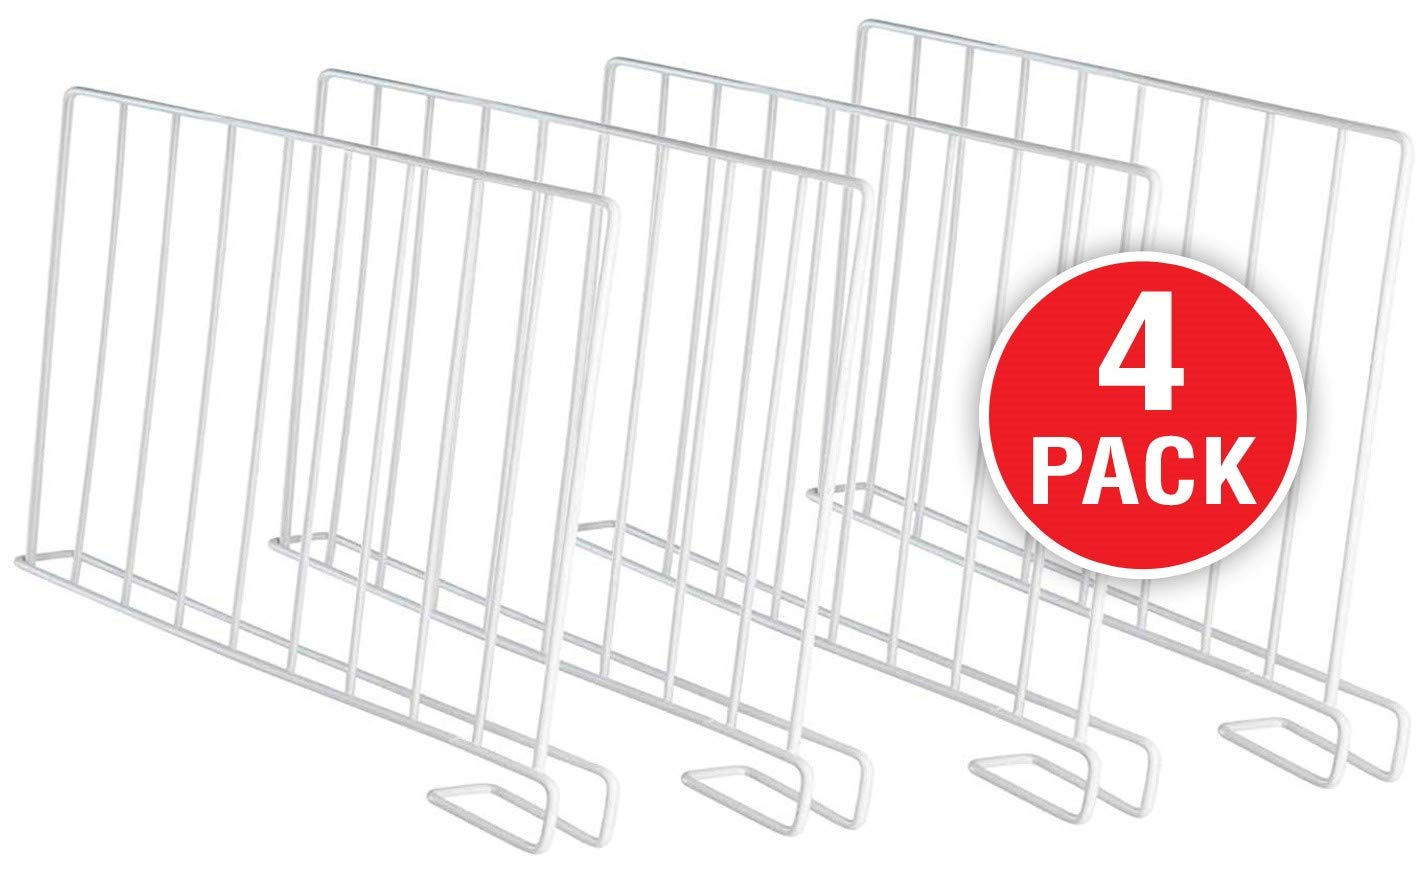 StorageMaid - Set of 4 - Wire Shelf Dividers for Bedroom Closets, Kitchen Cabinets, Wood Shelves, Bookcases and Libraries - Versatile, Multi-Functional Organizers for Home and Office by StorageMaid